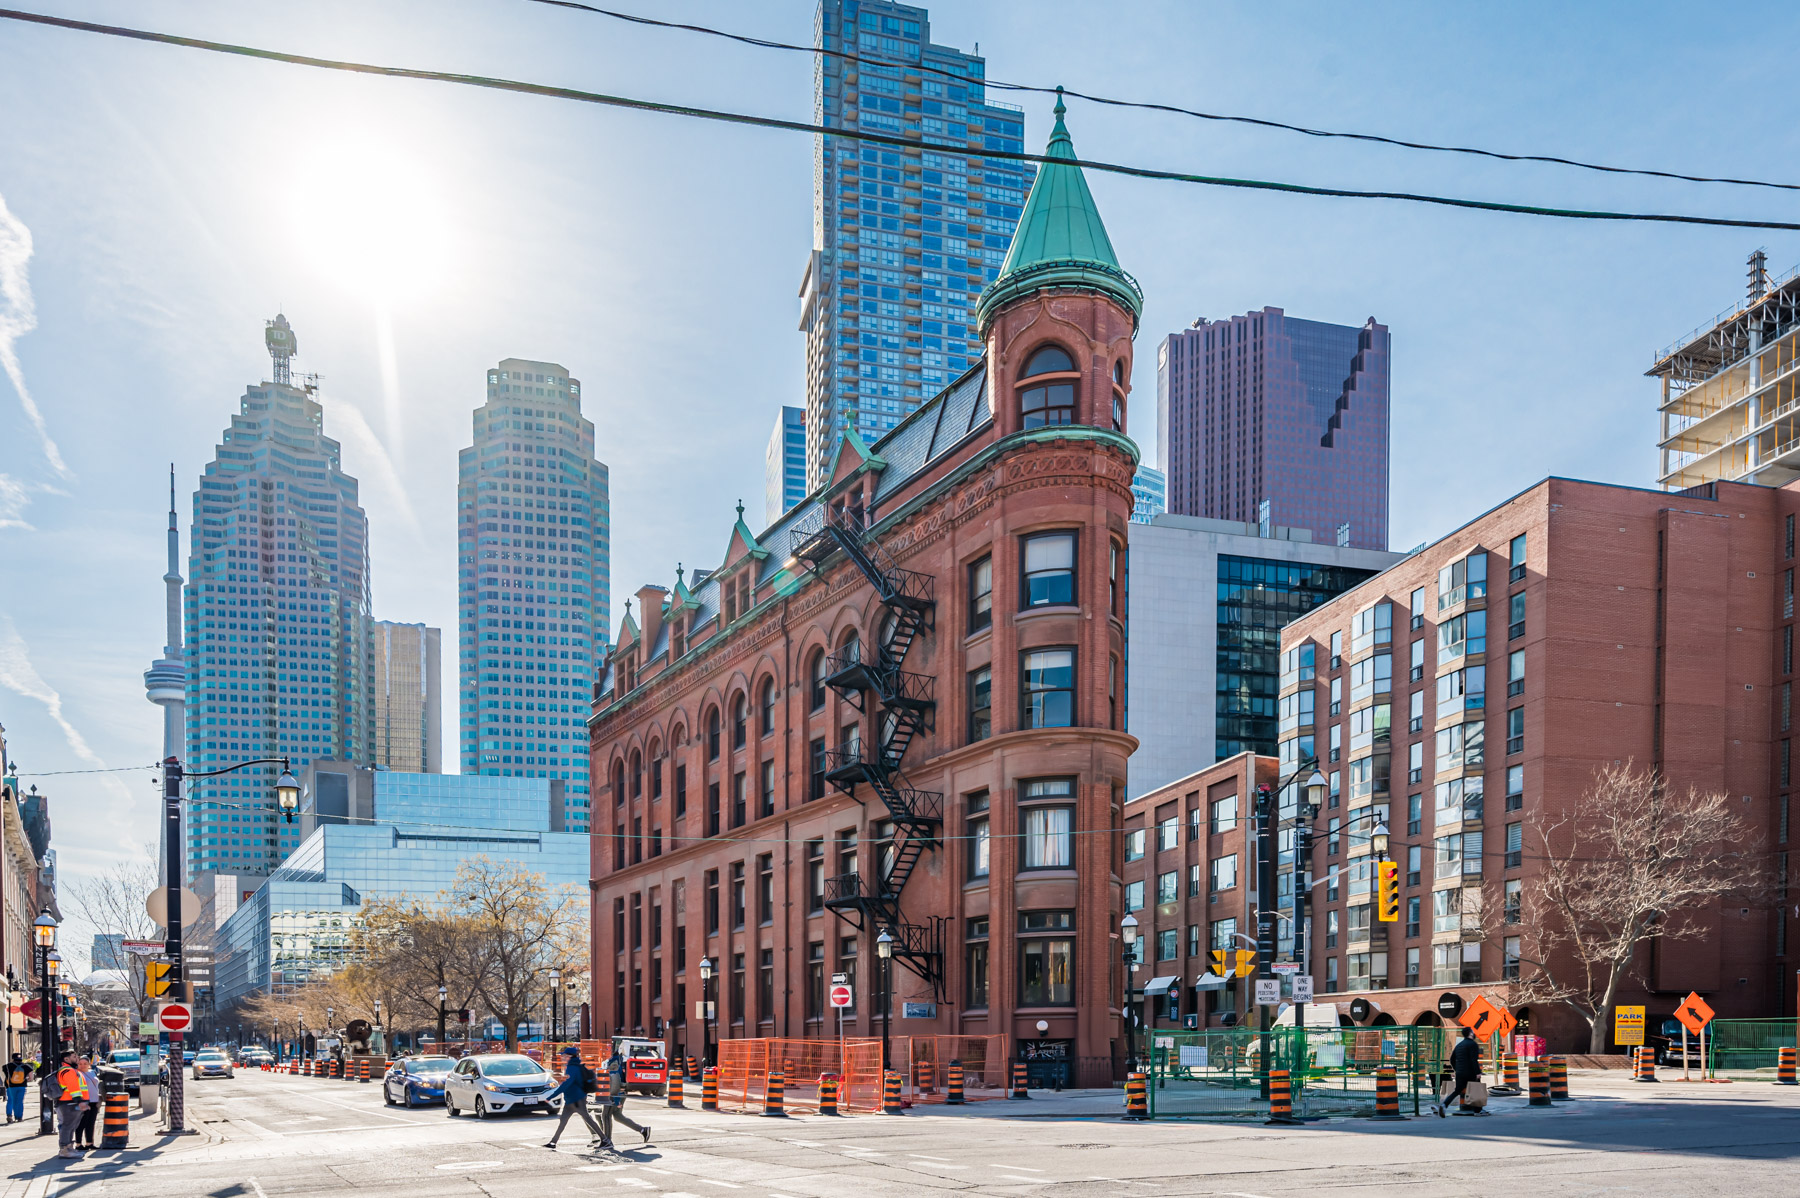 The Gooderham red brick flatiron building in Toronto with CN Tower in background.